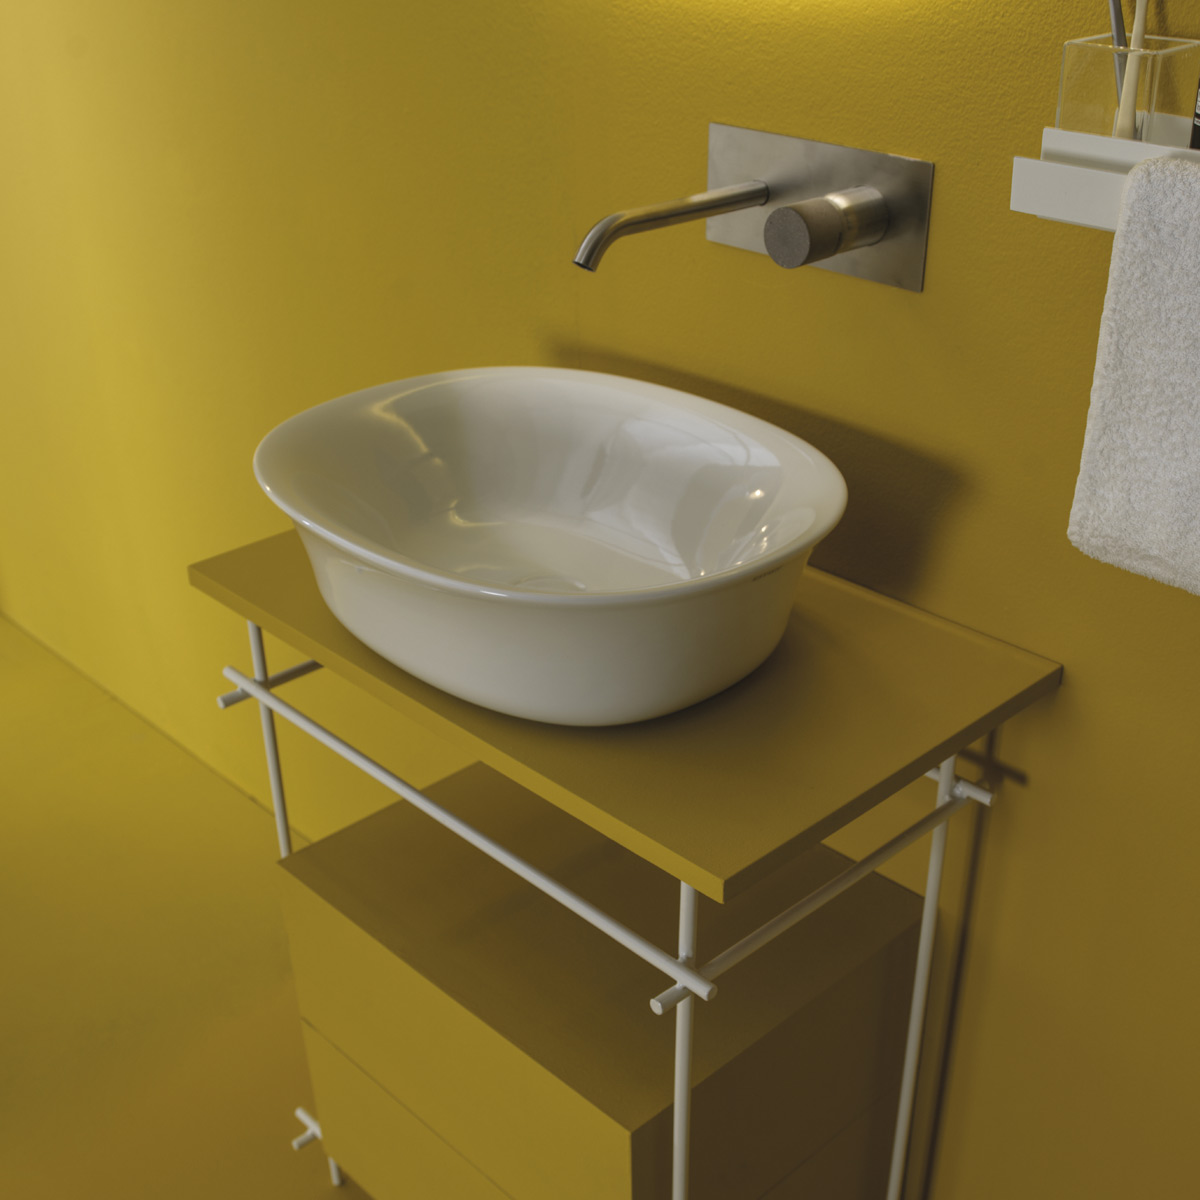 Sit-on washbasins